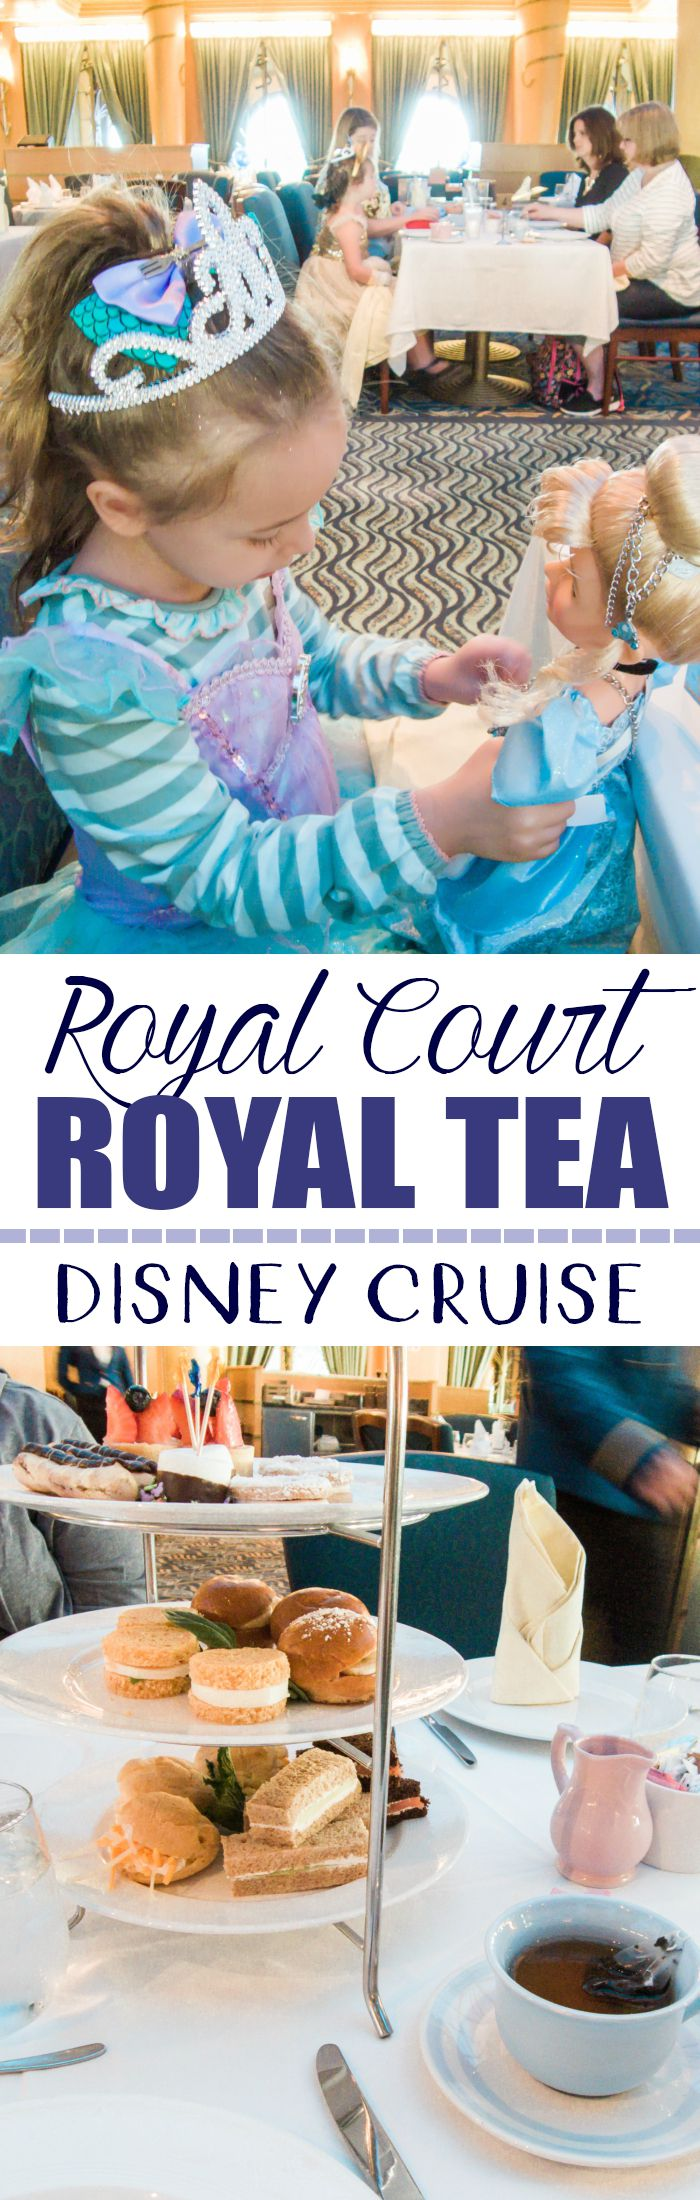 Make Your Disney Cruise Extra Special with Royal Court Royal Tea Party #disneysmmc